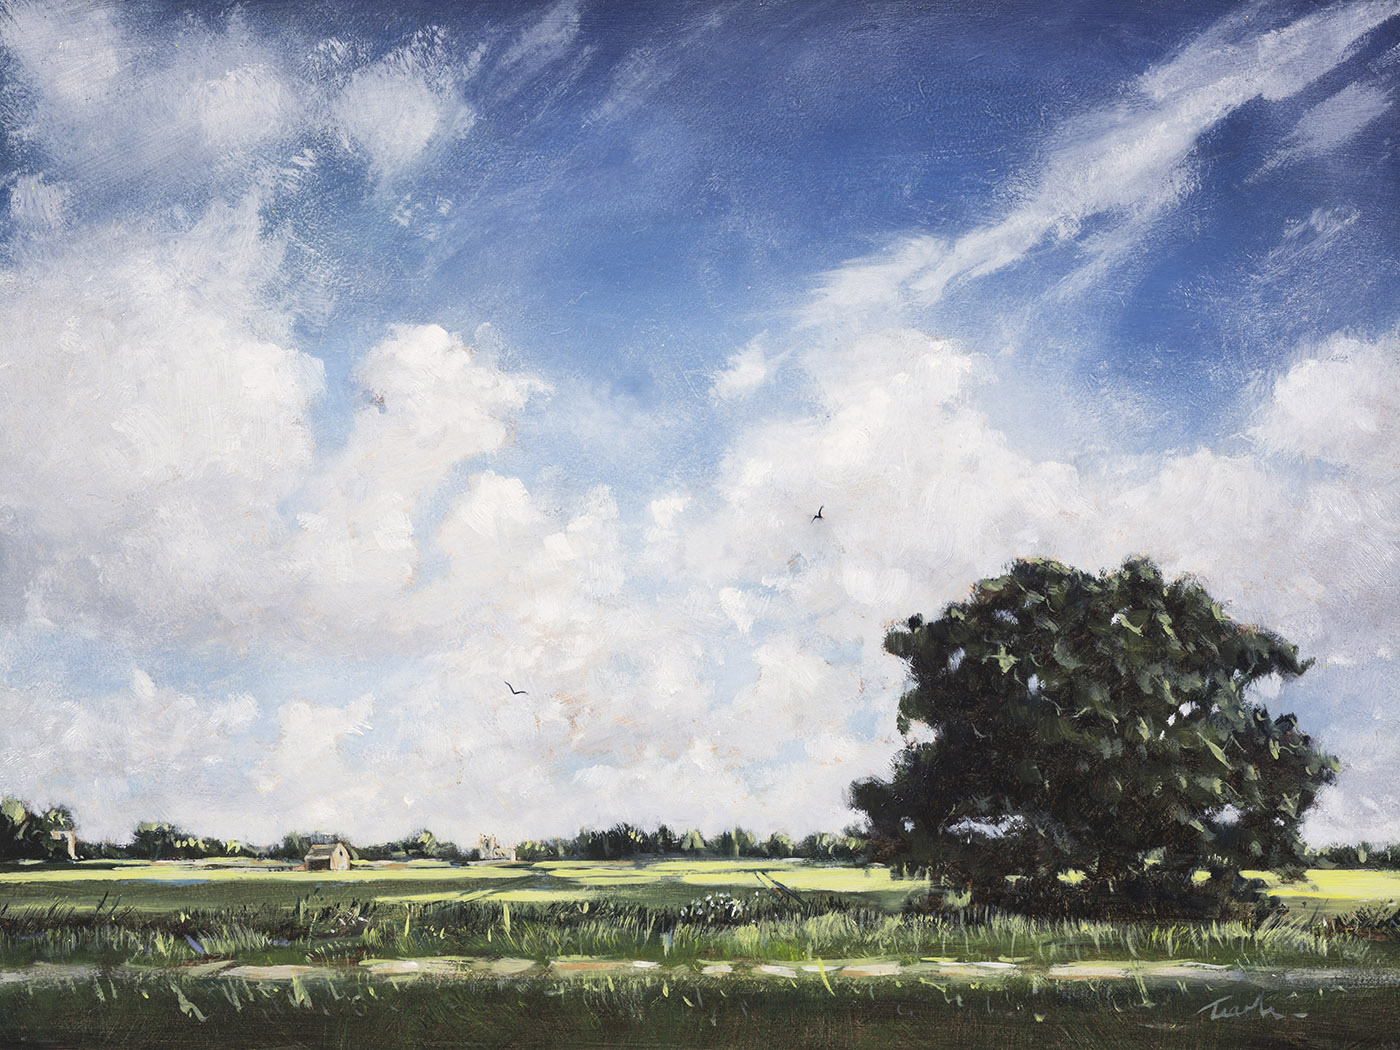 Fenland Sky over the Welland- Nick Tearle Fenland Artist